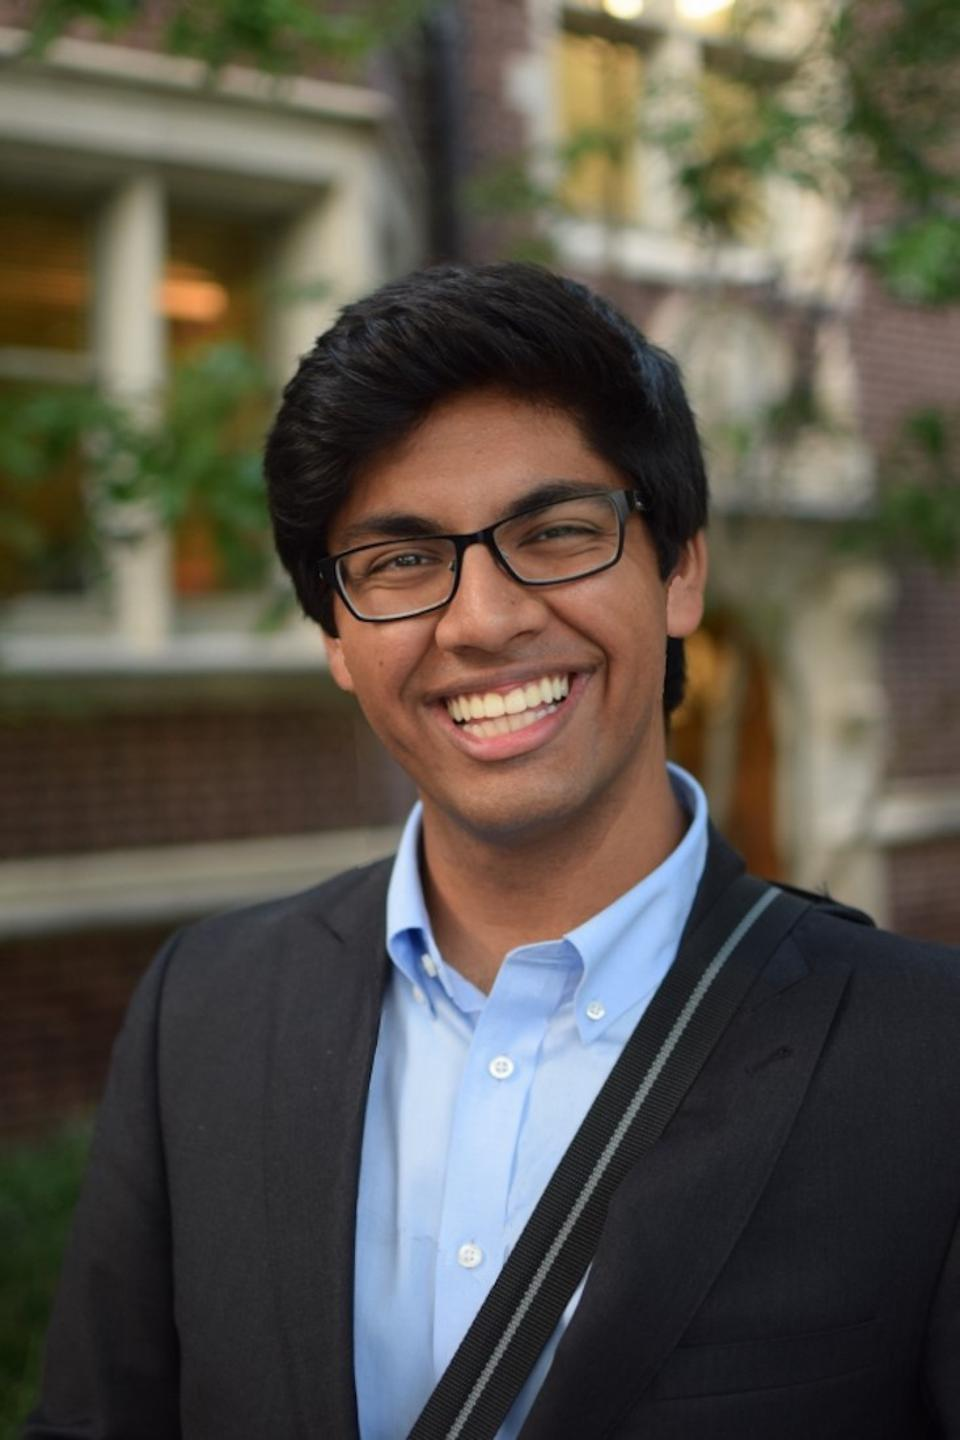 Chris Cherian, co-founder and CEO of Gatherly.